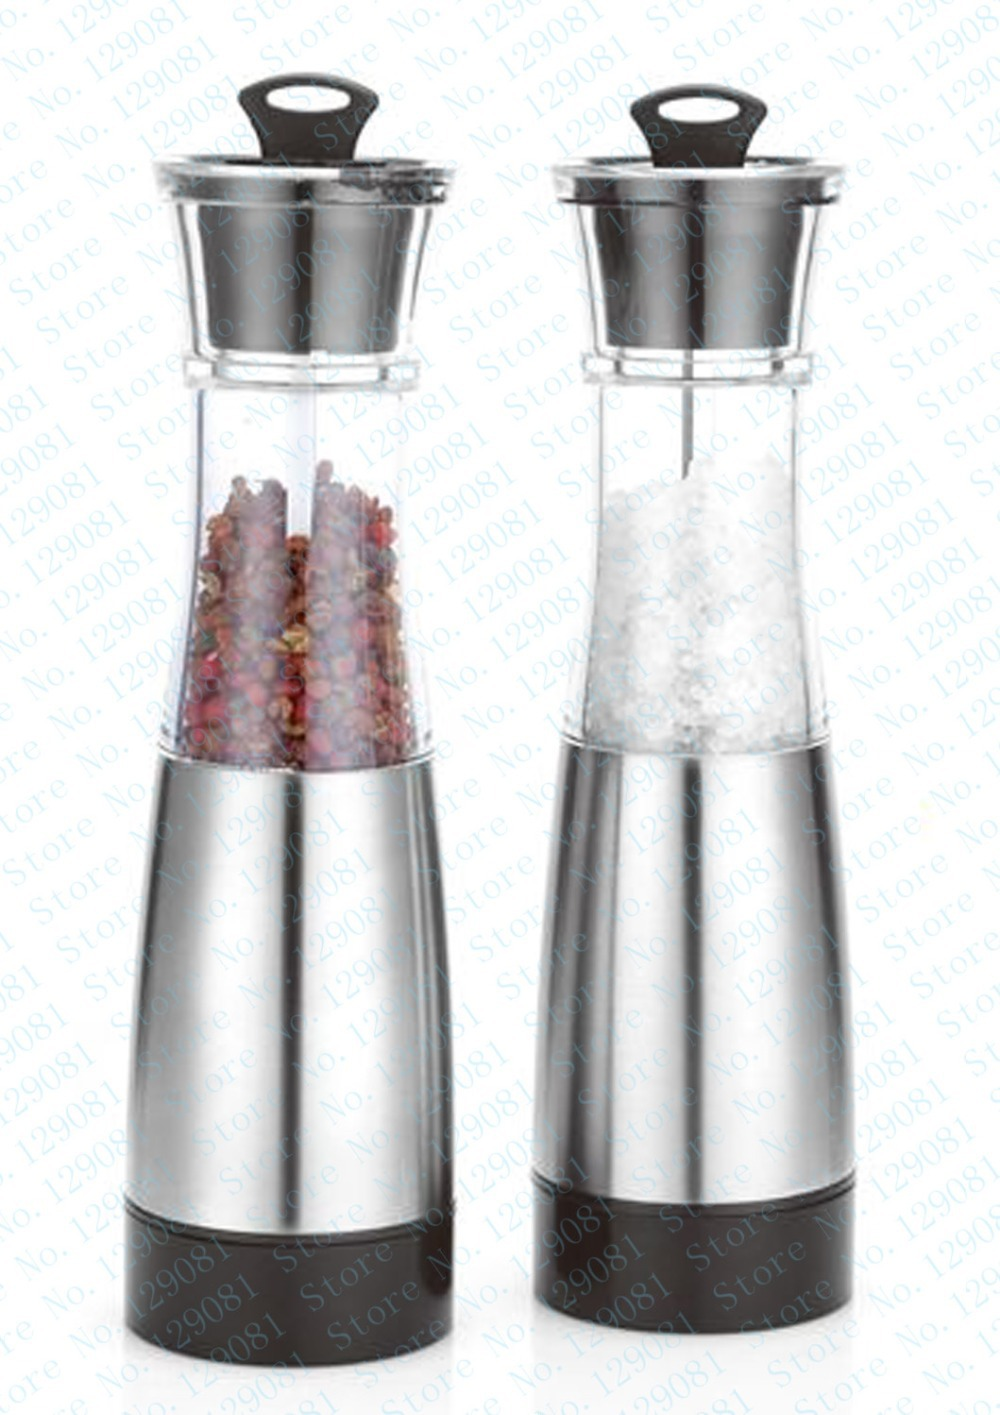 new stainless steel electric pepper mill & sea salt - Kitchen, Dining and Bar - Photo 2